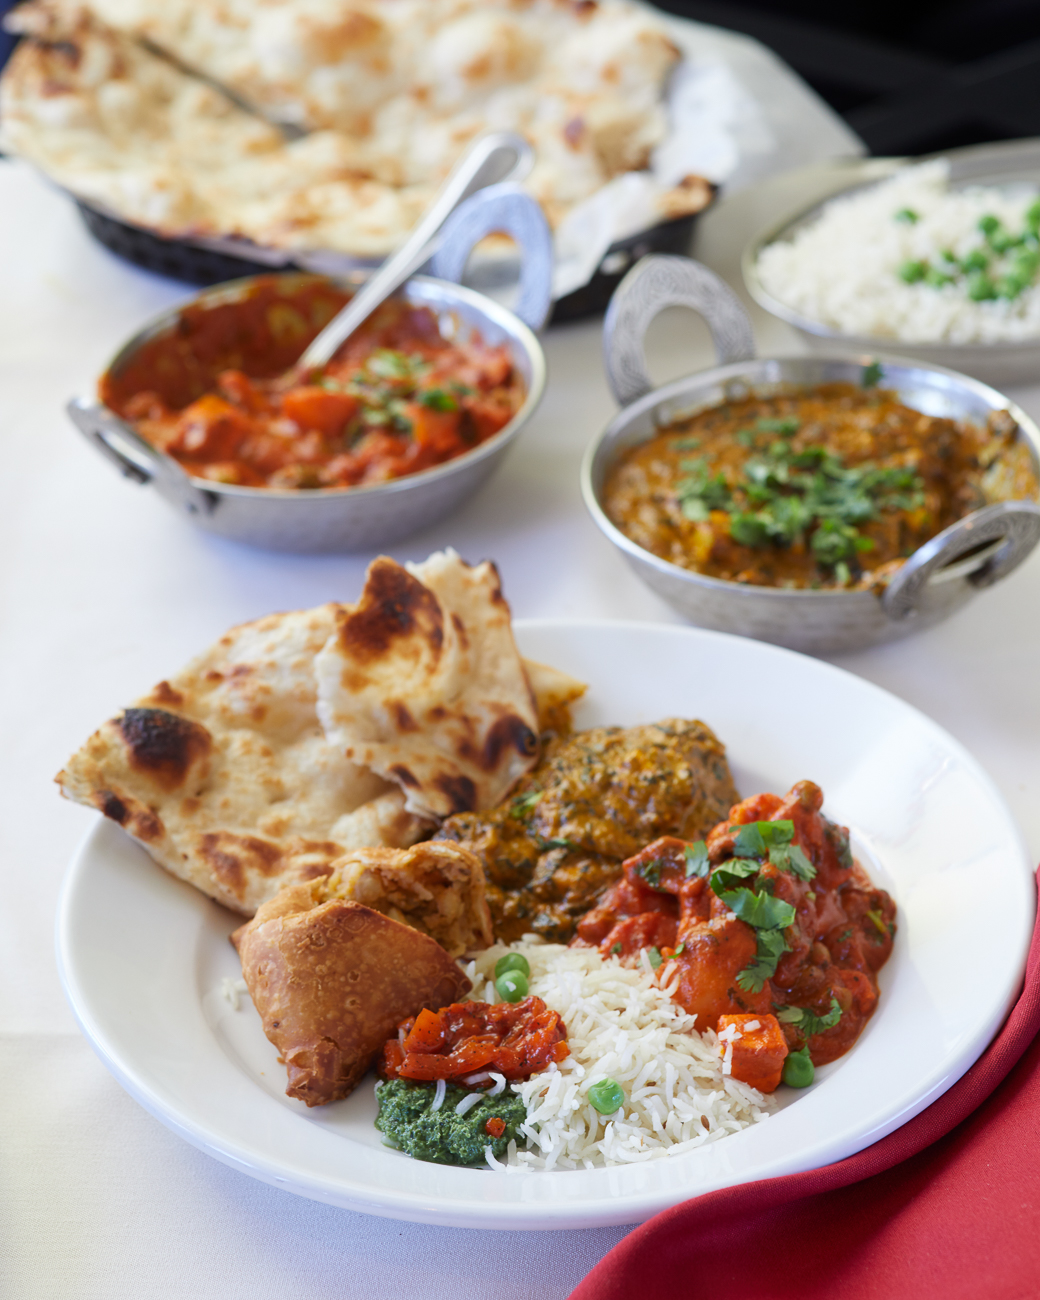 Vegetable Jalfreezi, samosa, saag paneer, and plain naan / Image: Marlene Rounds // Published: 8.4.18